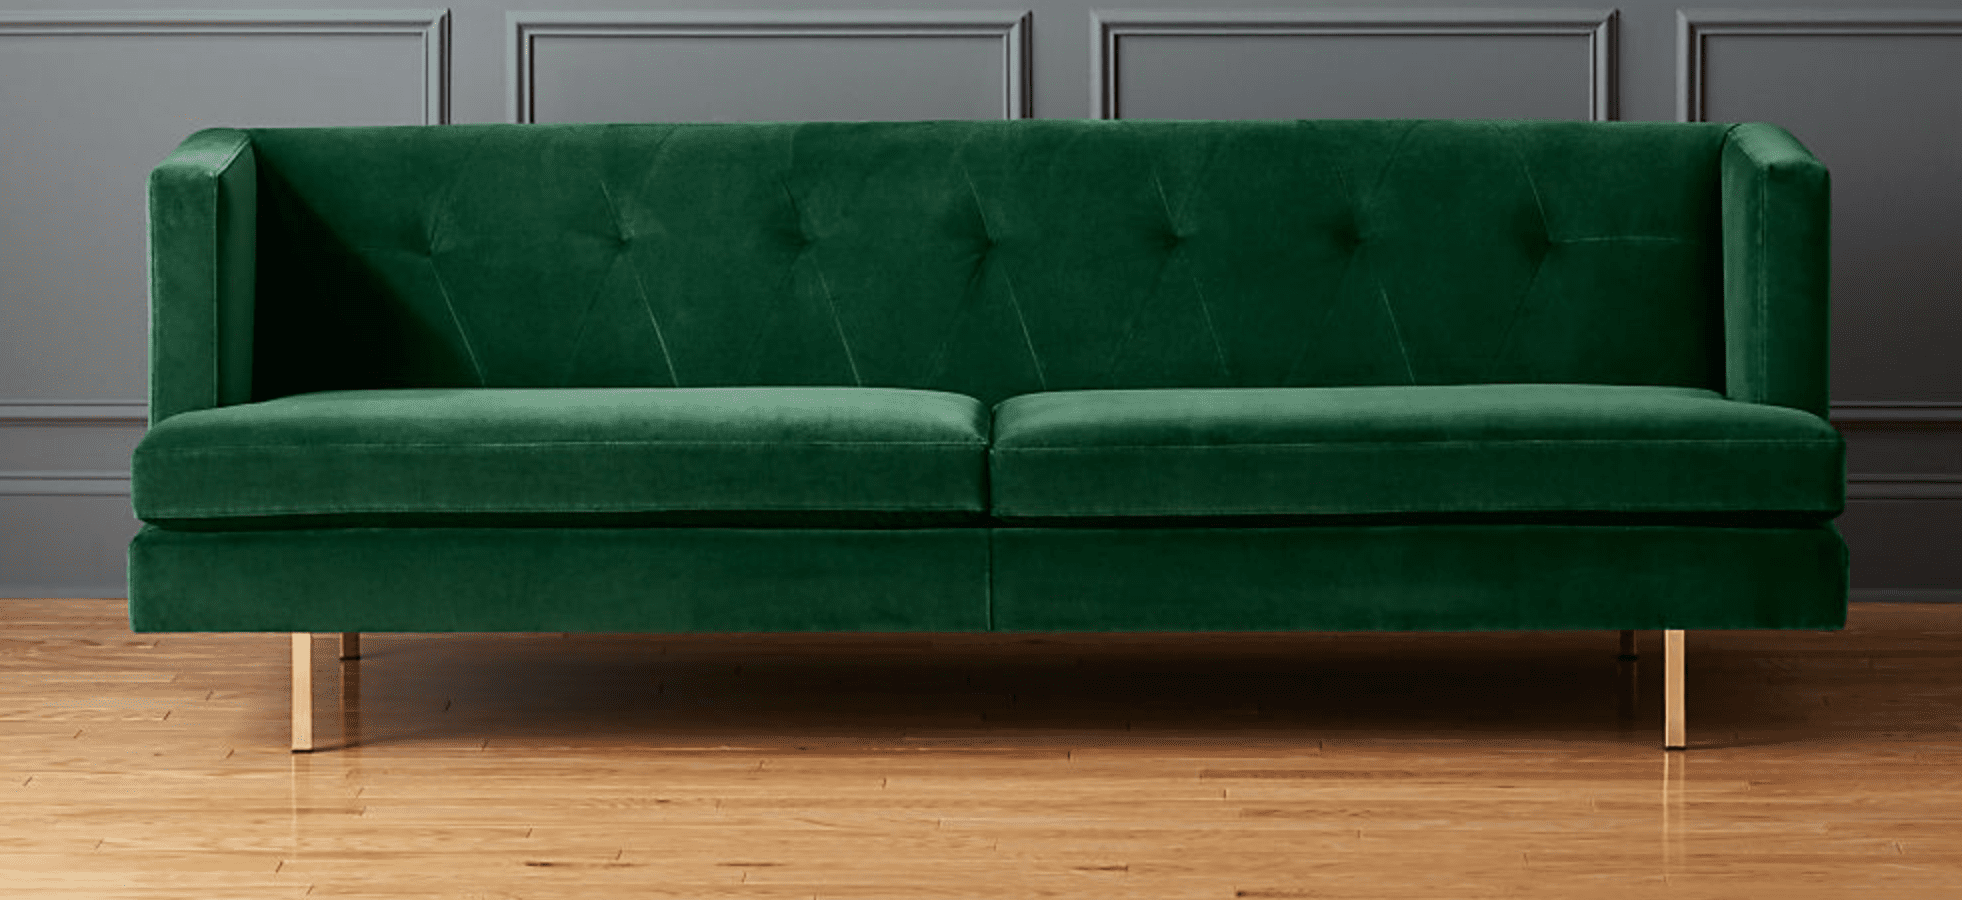 cb2 emerald green couch